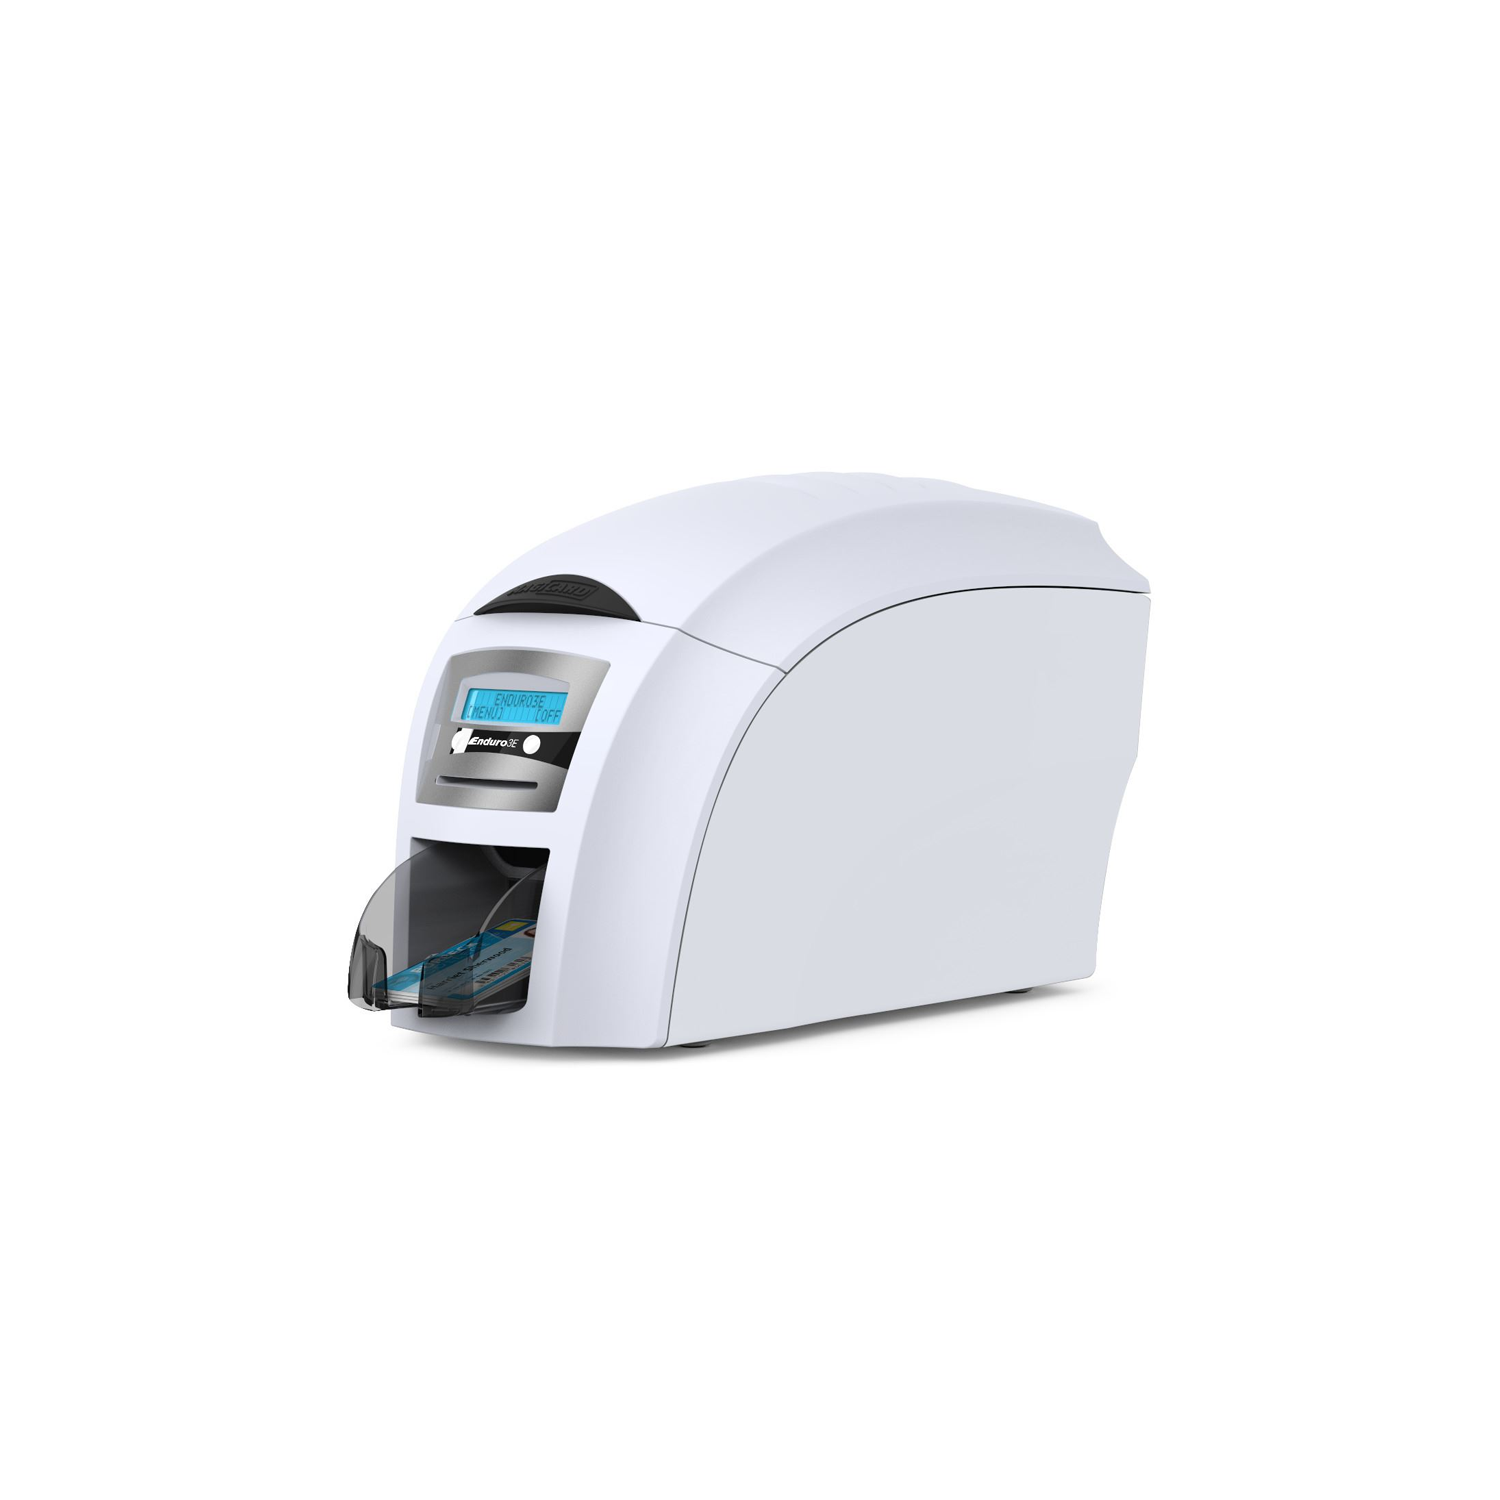 Magicard ENDURO - ID CARD PRINTER